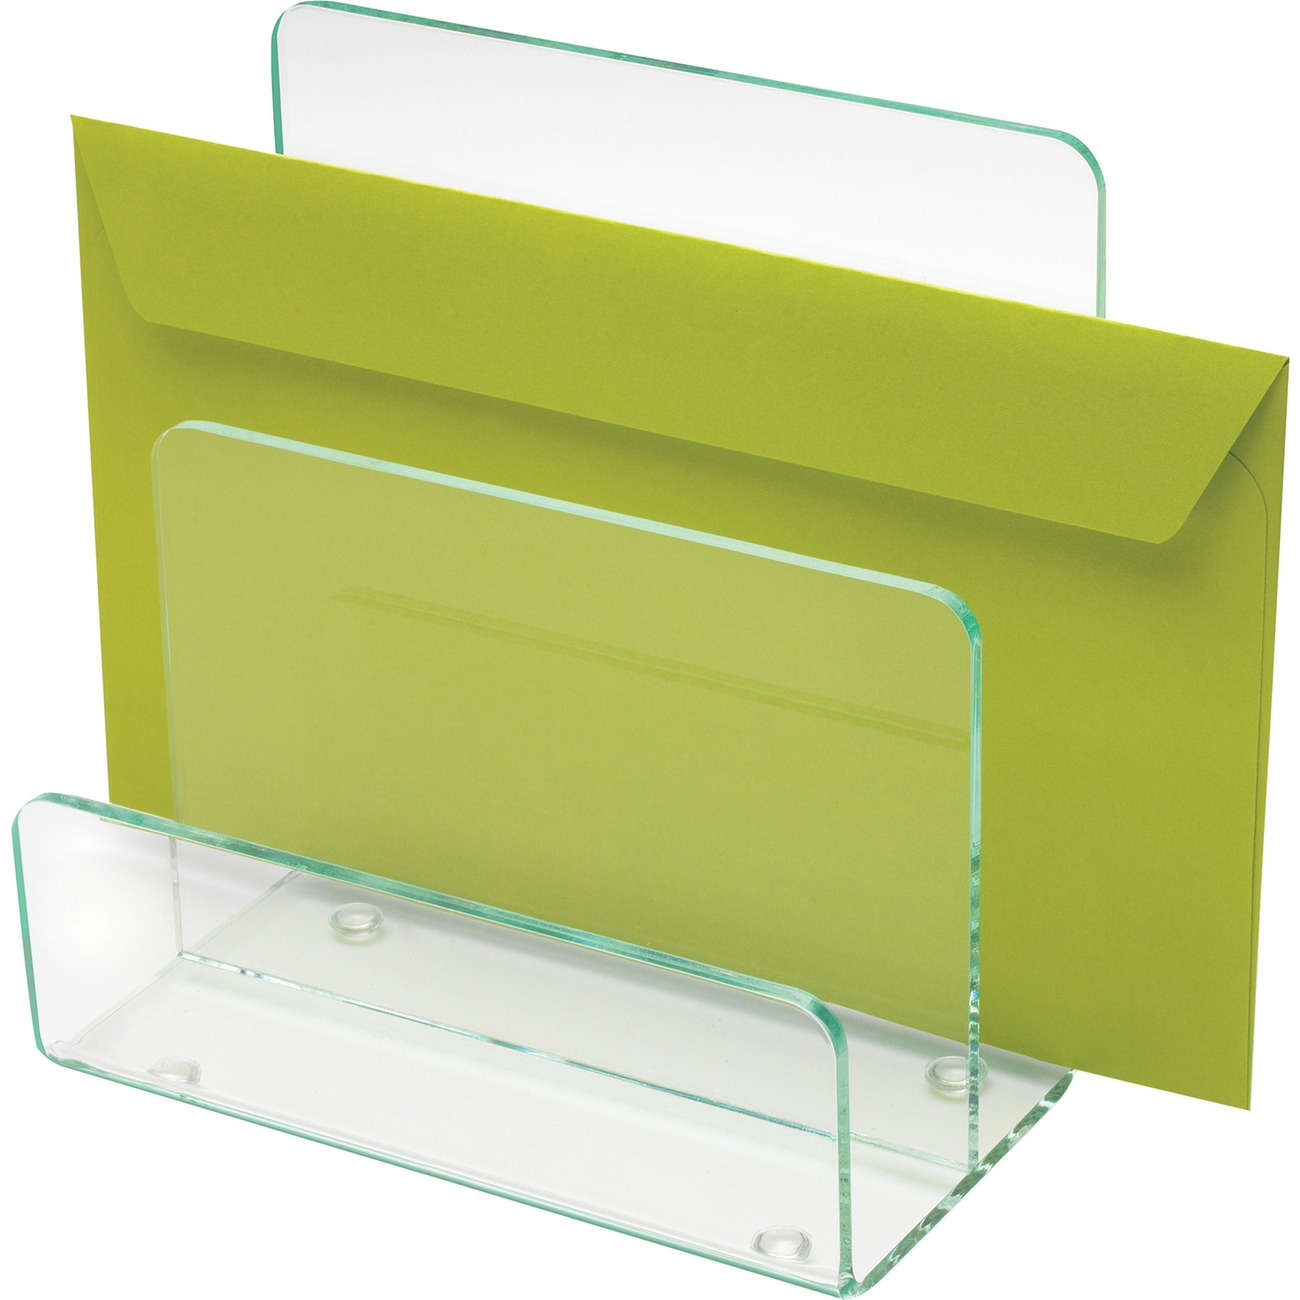 Smooth, Curved Edges Feature A Hint Of Green To Emulate The Look Of Real  Glass. Nonskid Feet Protect Desktop Surfaces And Keep ...